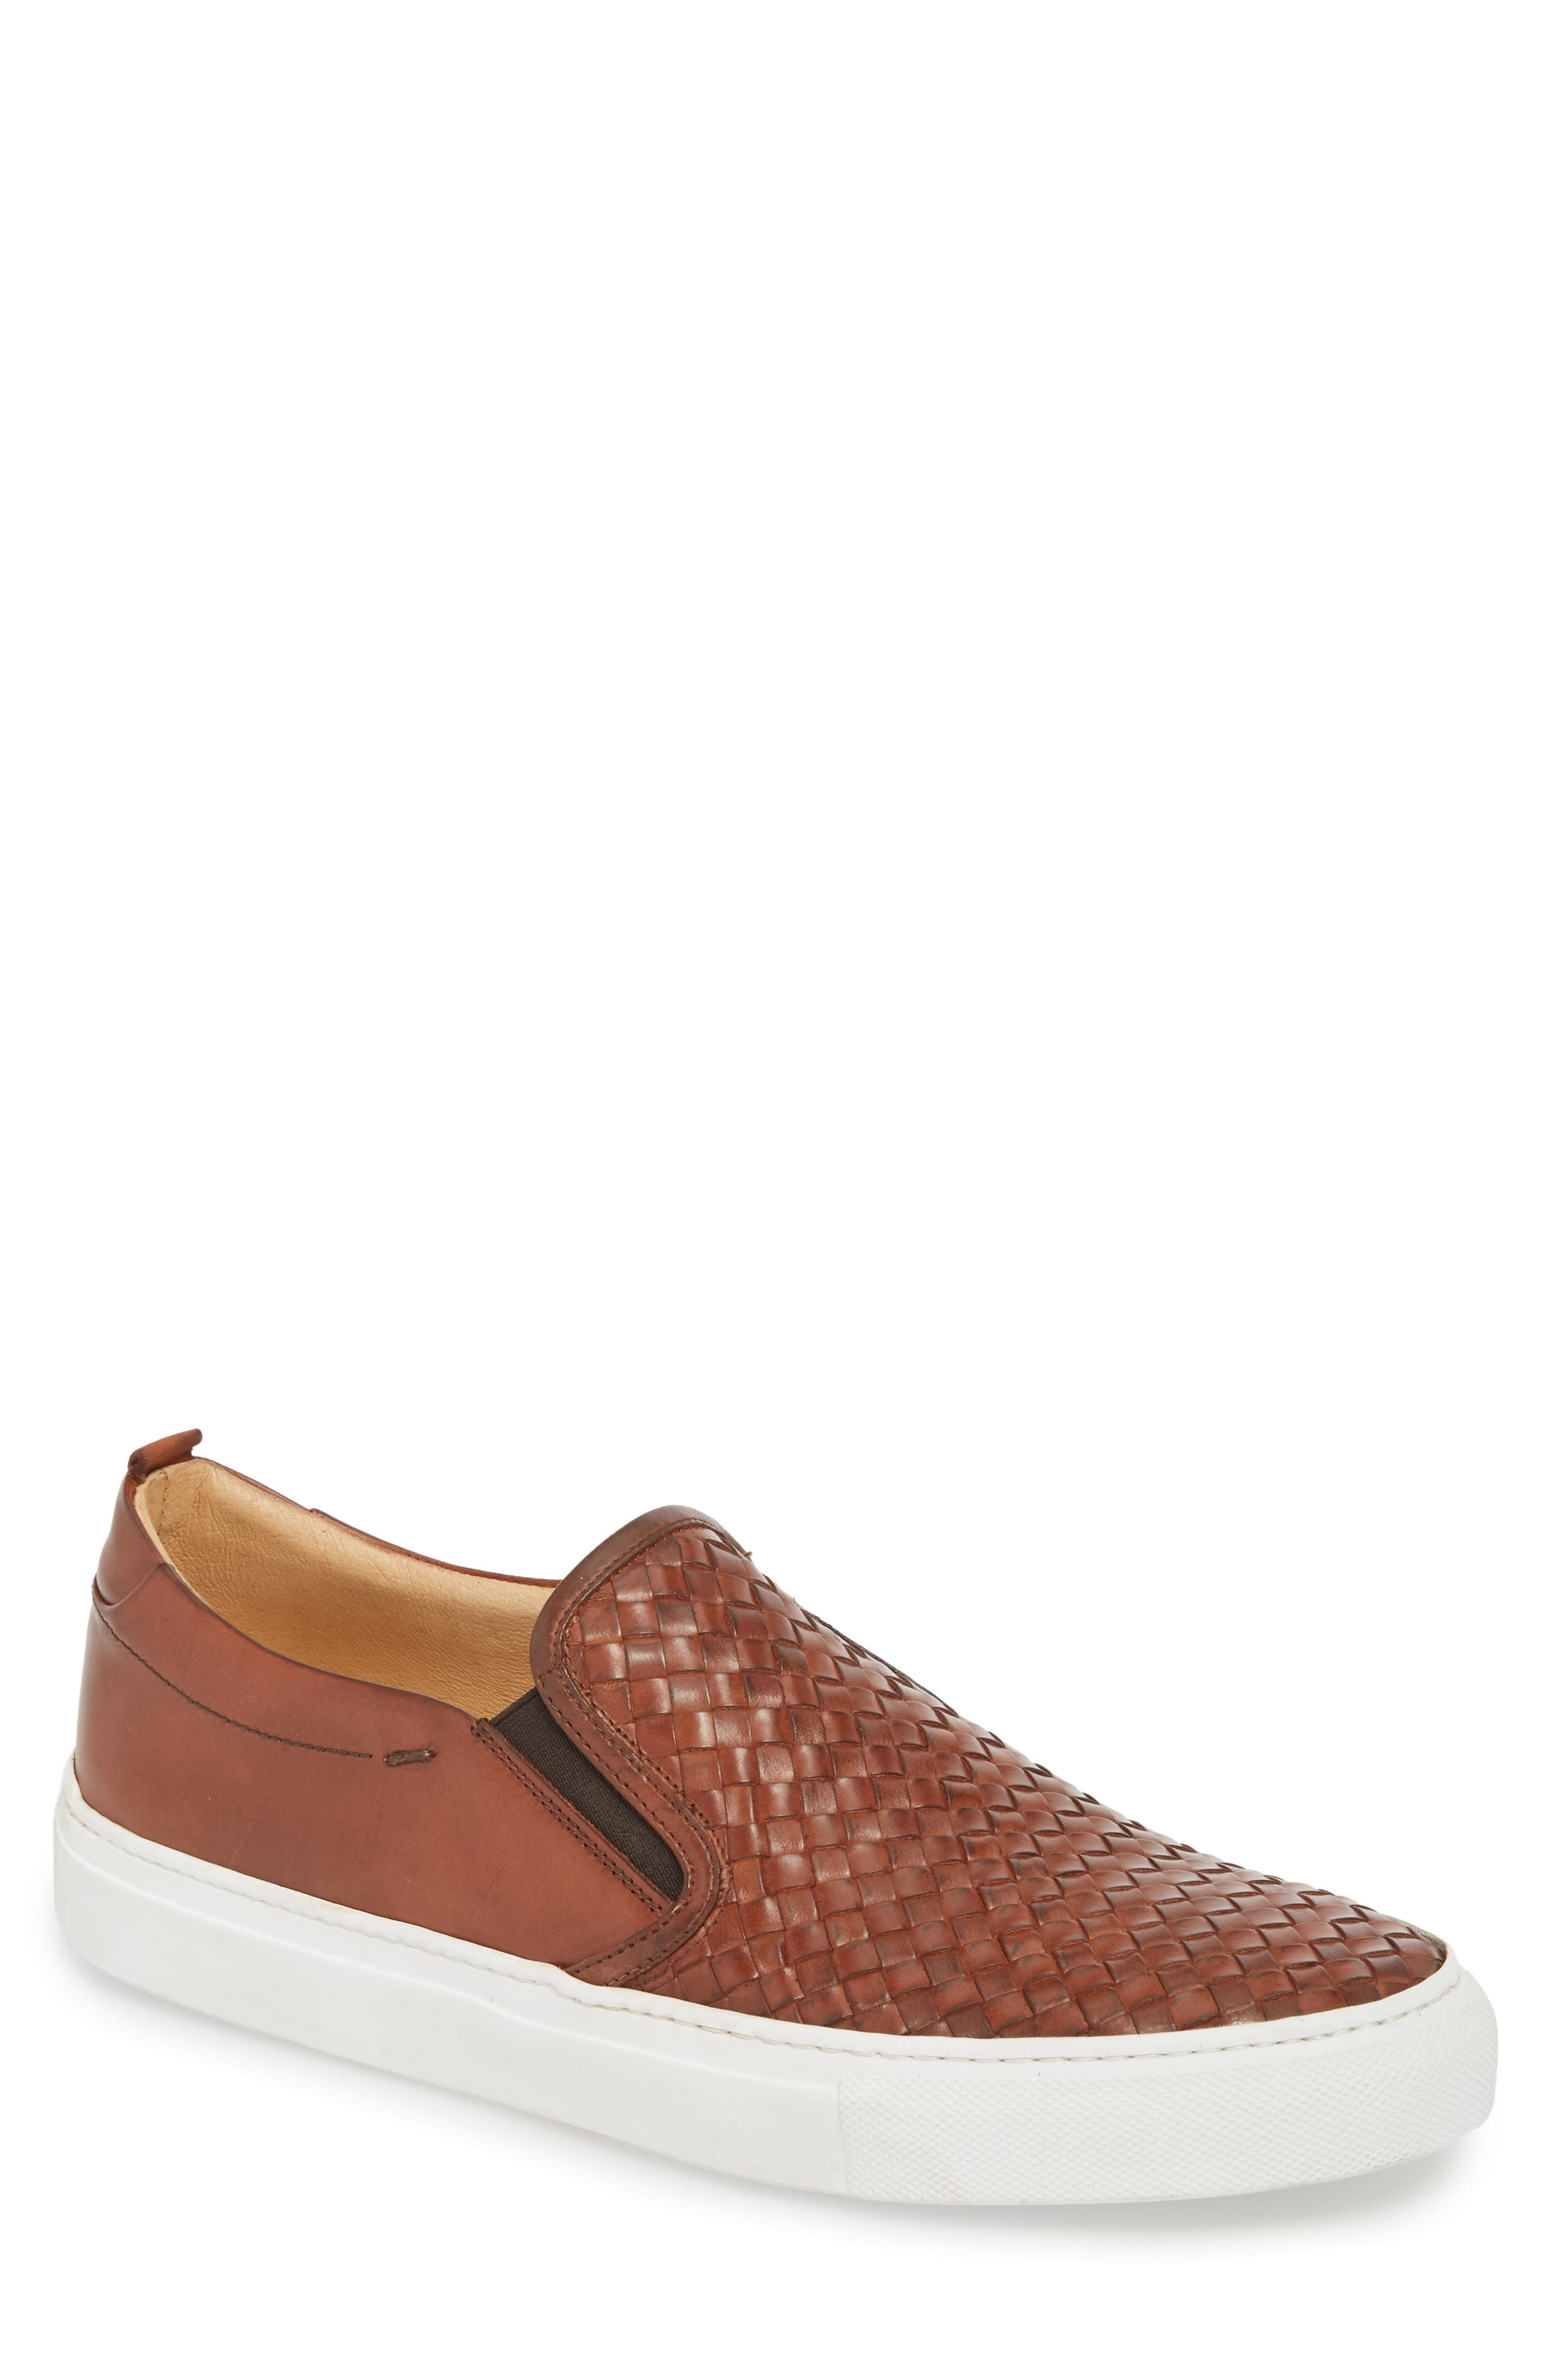 Grifyn Woven Slip-On Sneaker,                             Main thumbnail 1, color,                             Cognac Leather